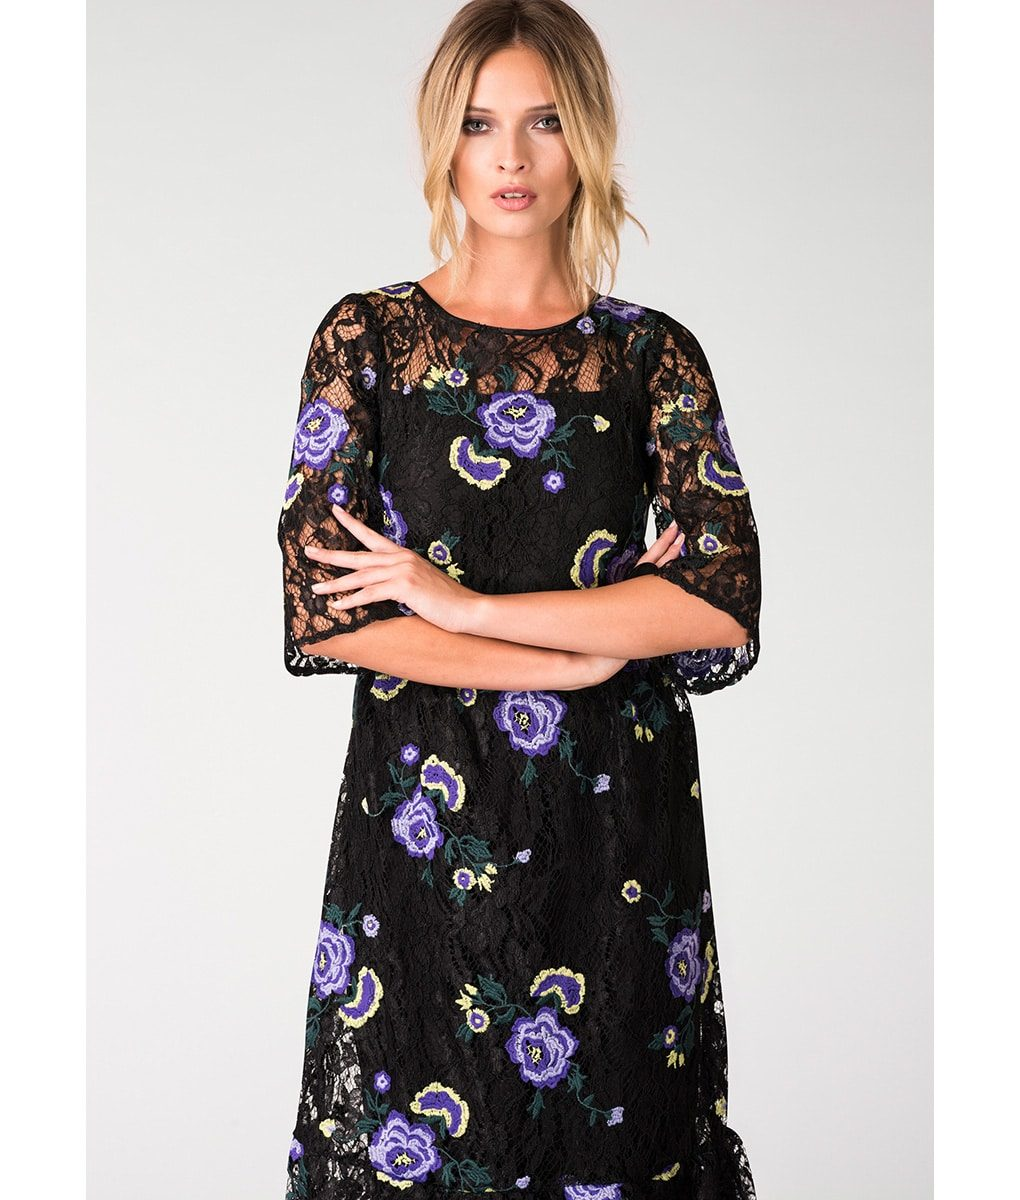 Alila-Lace-Frill-Hem-Embroidered-Midi-Dress-with-sleeves-Closet-London